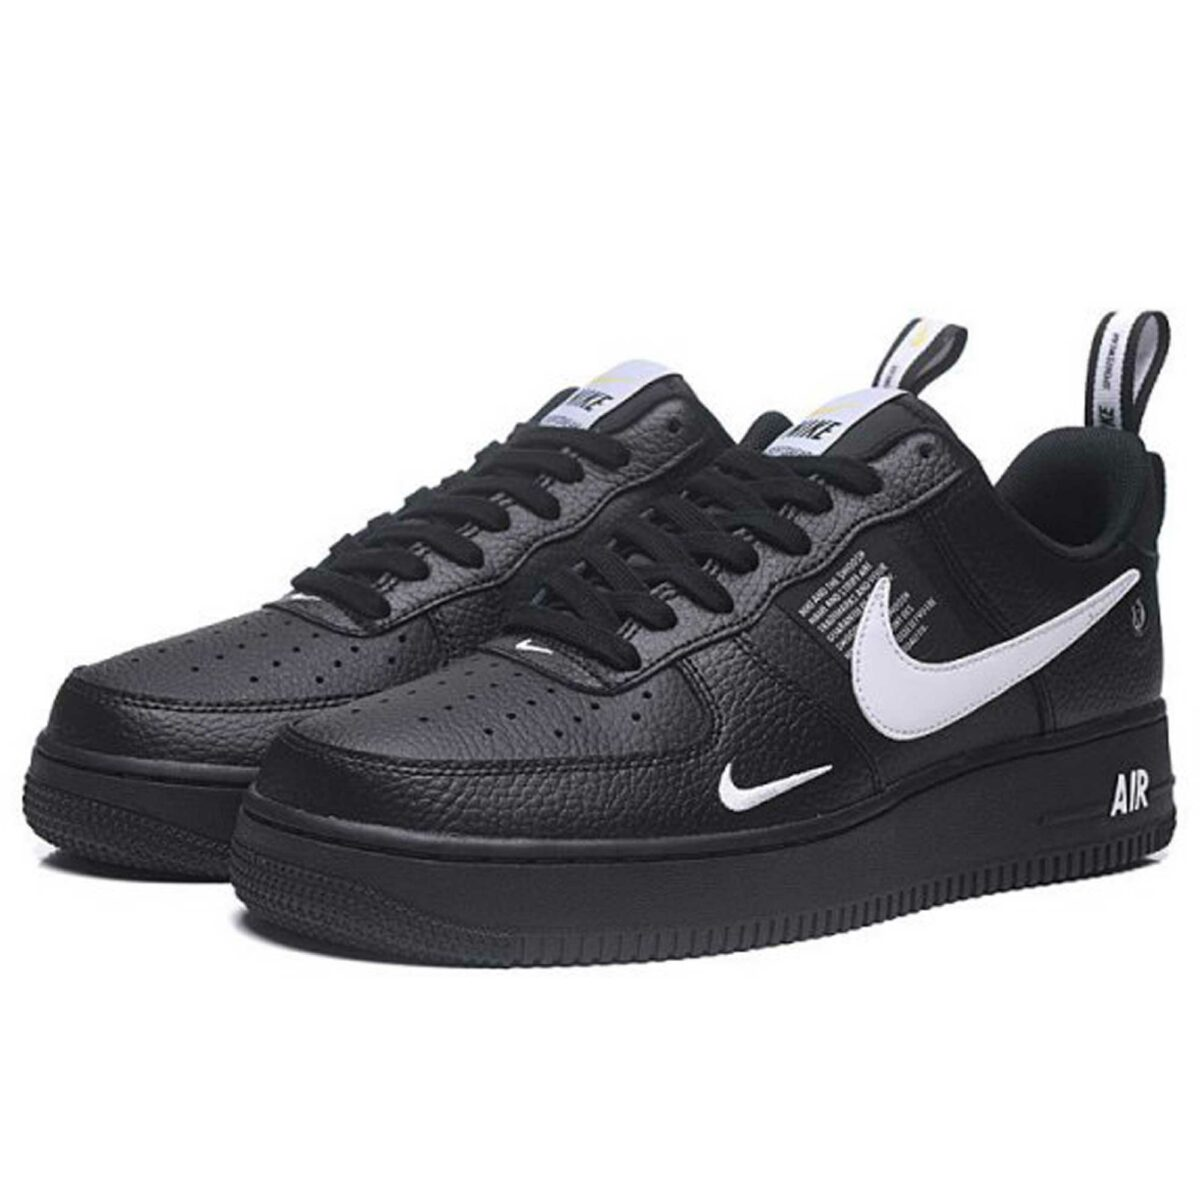 nike air force 1 `07 lv8 black white AJ7747_001 купить